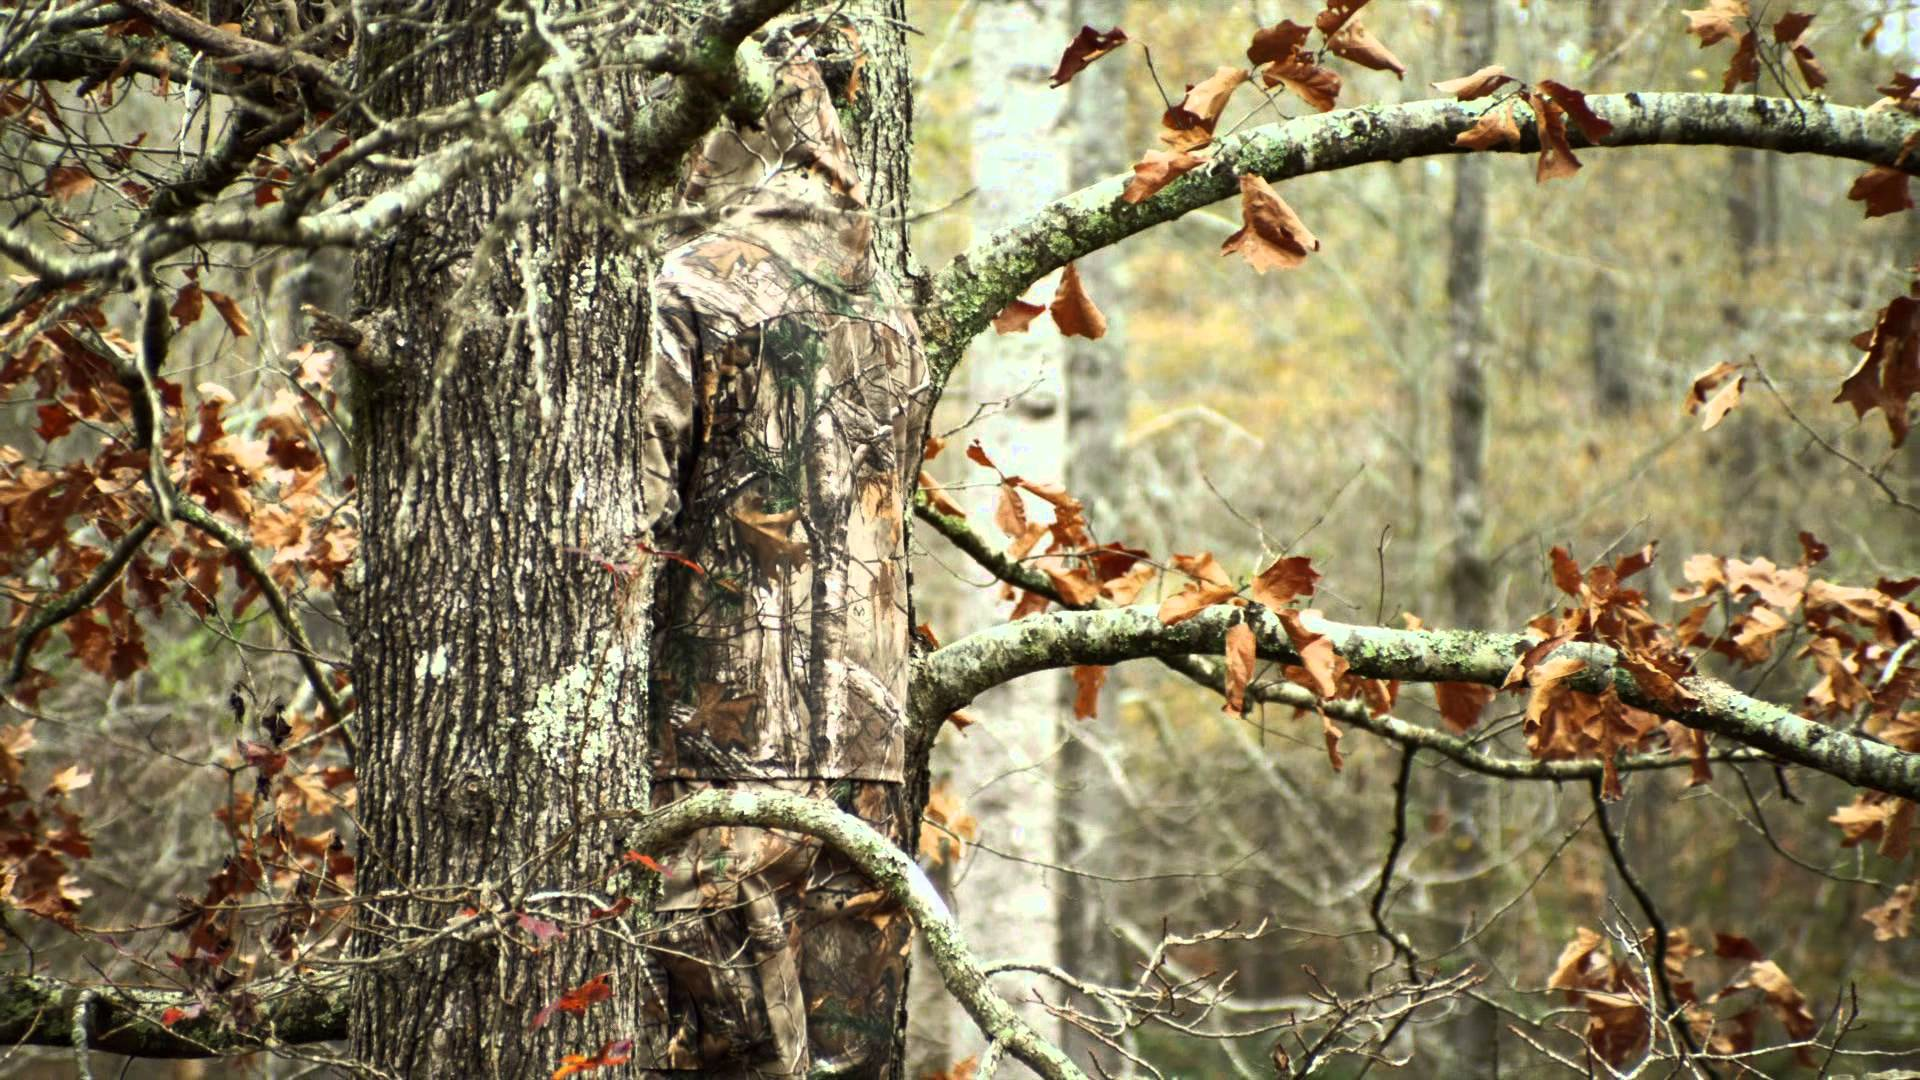 Realtree Camo Wallpaper Hd Images Pictures   Becuo 1920x1080